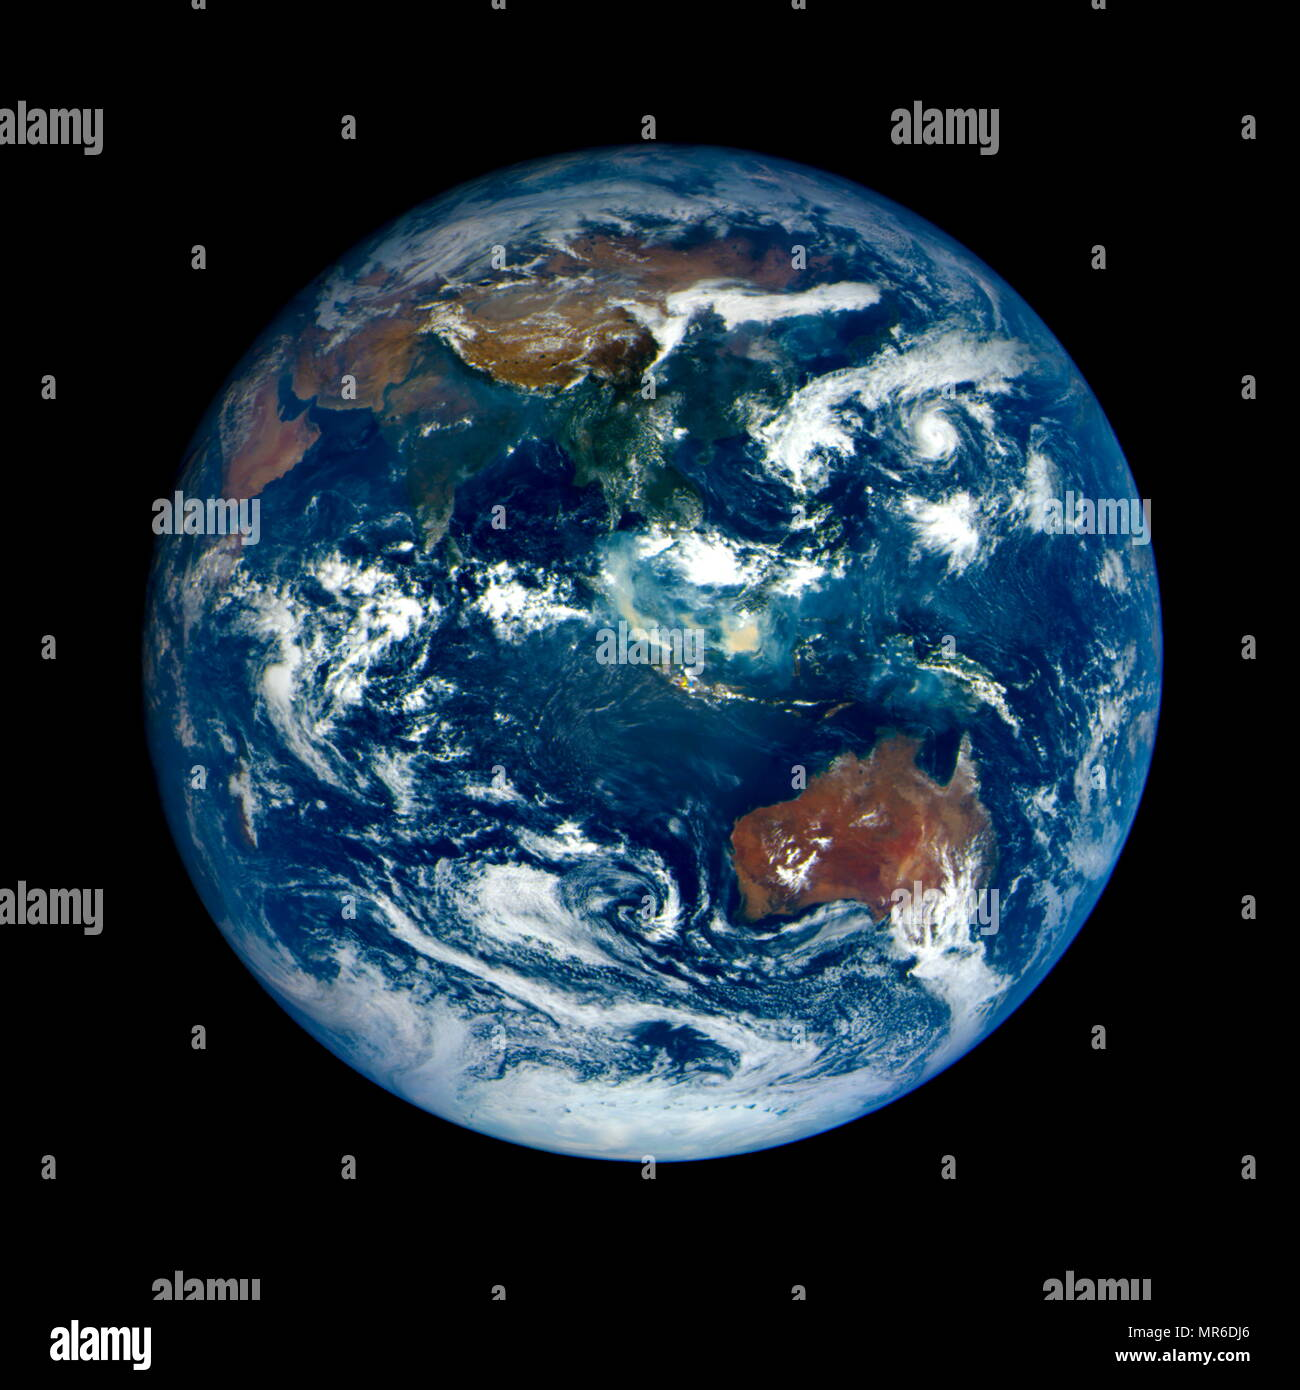 Satellite photograph of the Southern Indian Ocean and the land masses of the Indian and Australian continents. 2015 - Stock Image